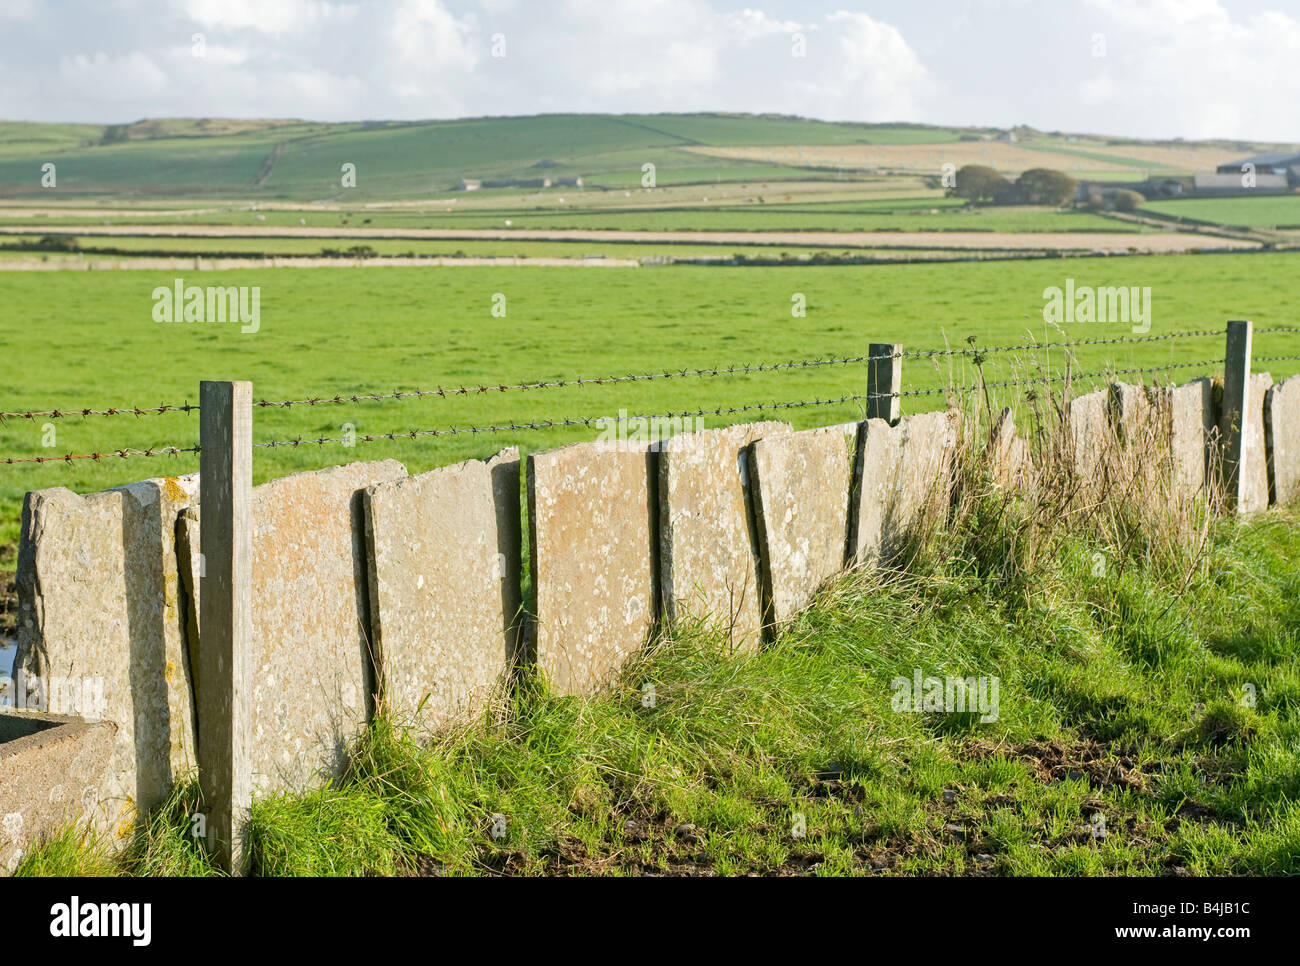 Caithness Flagstone used as a wall for retaining farm stock Northern Scottish Mainland Highlands UK - Stock Image